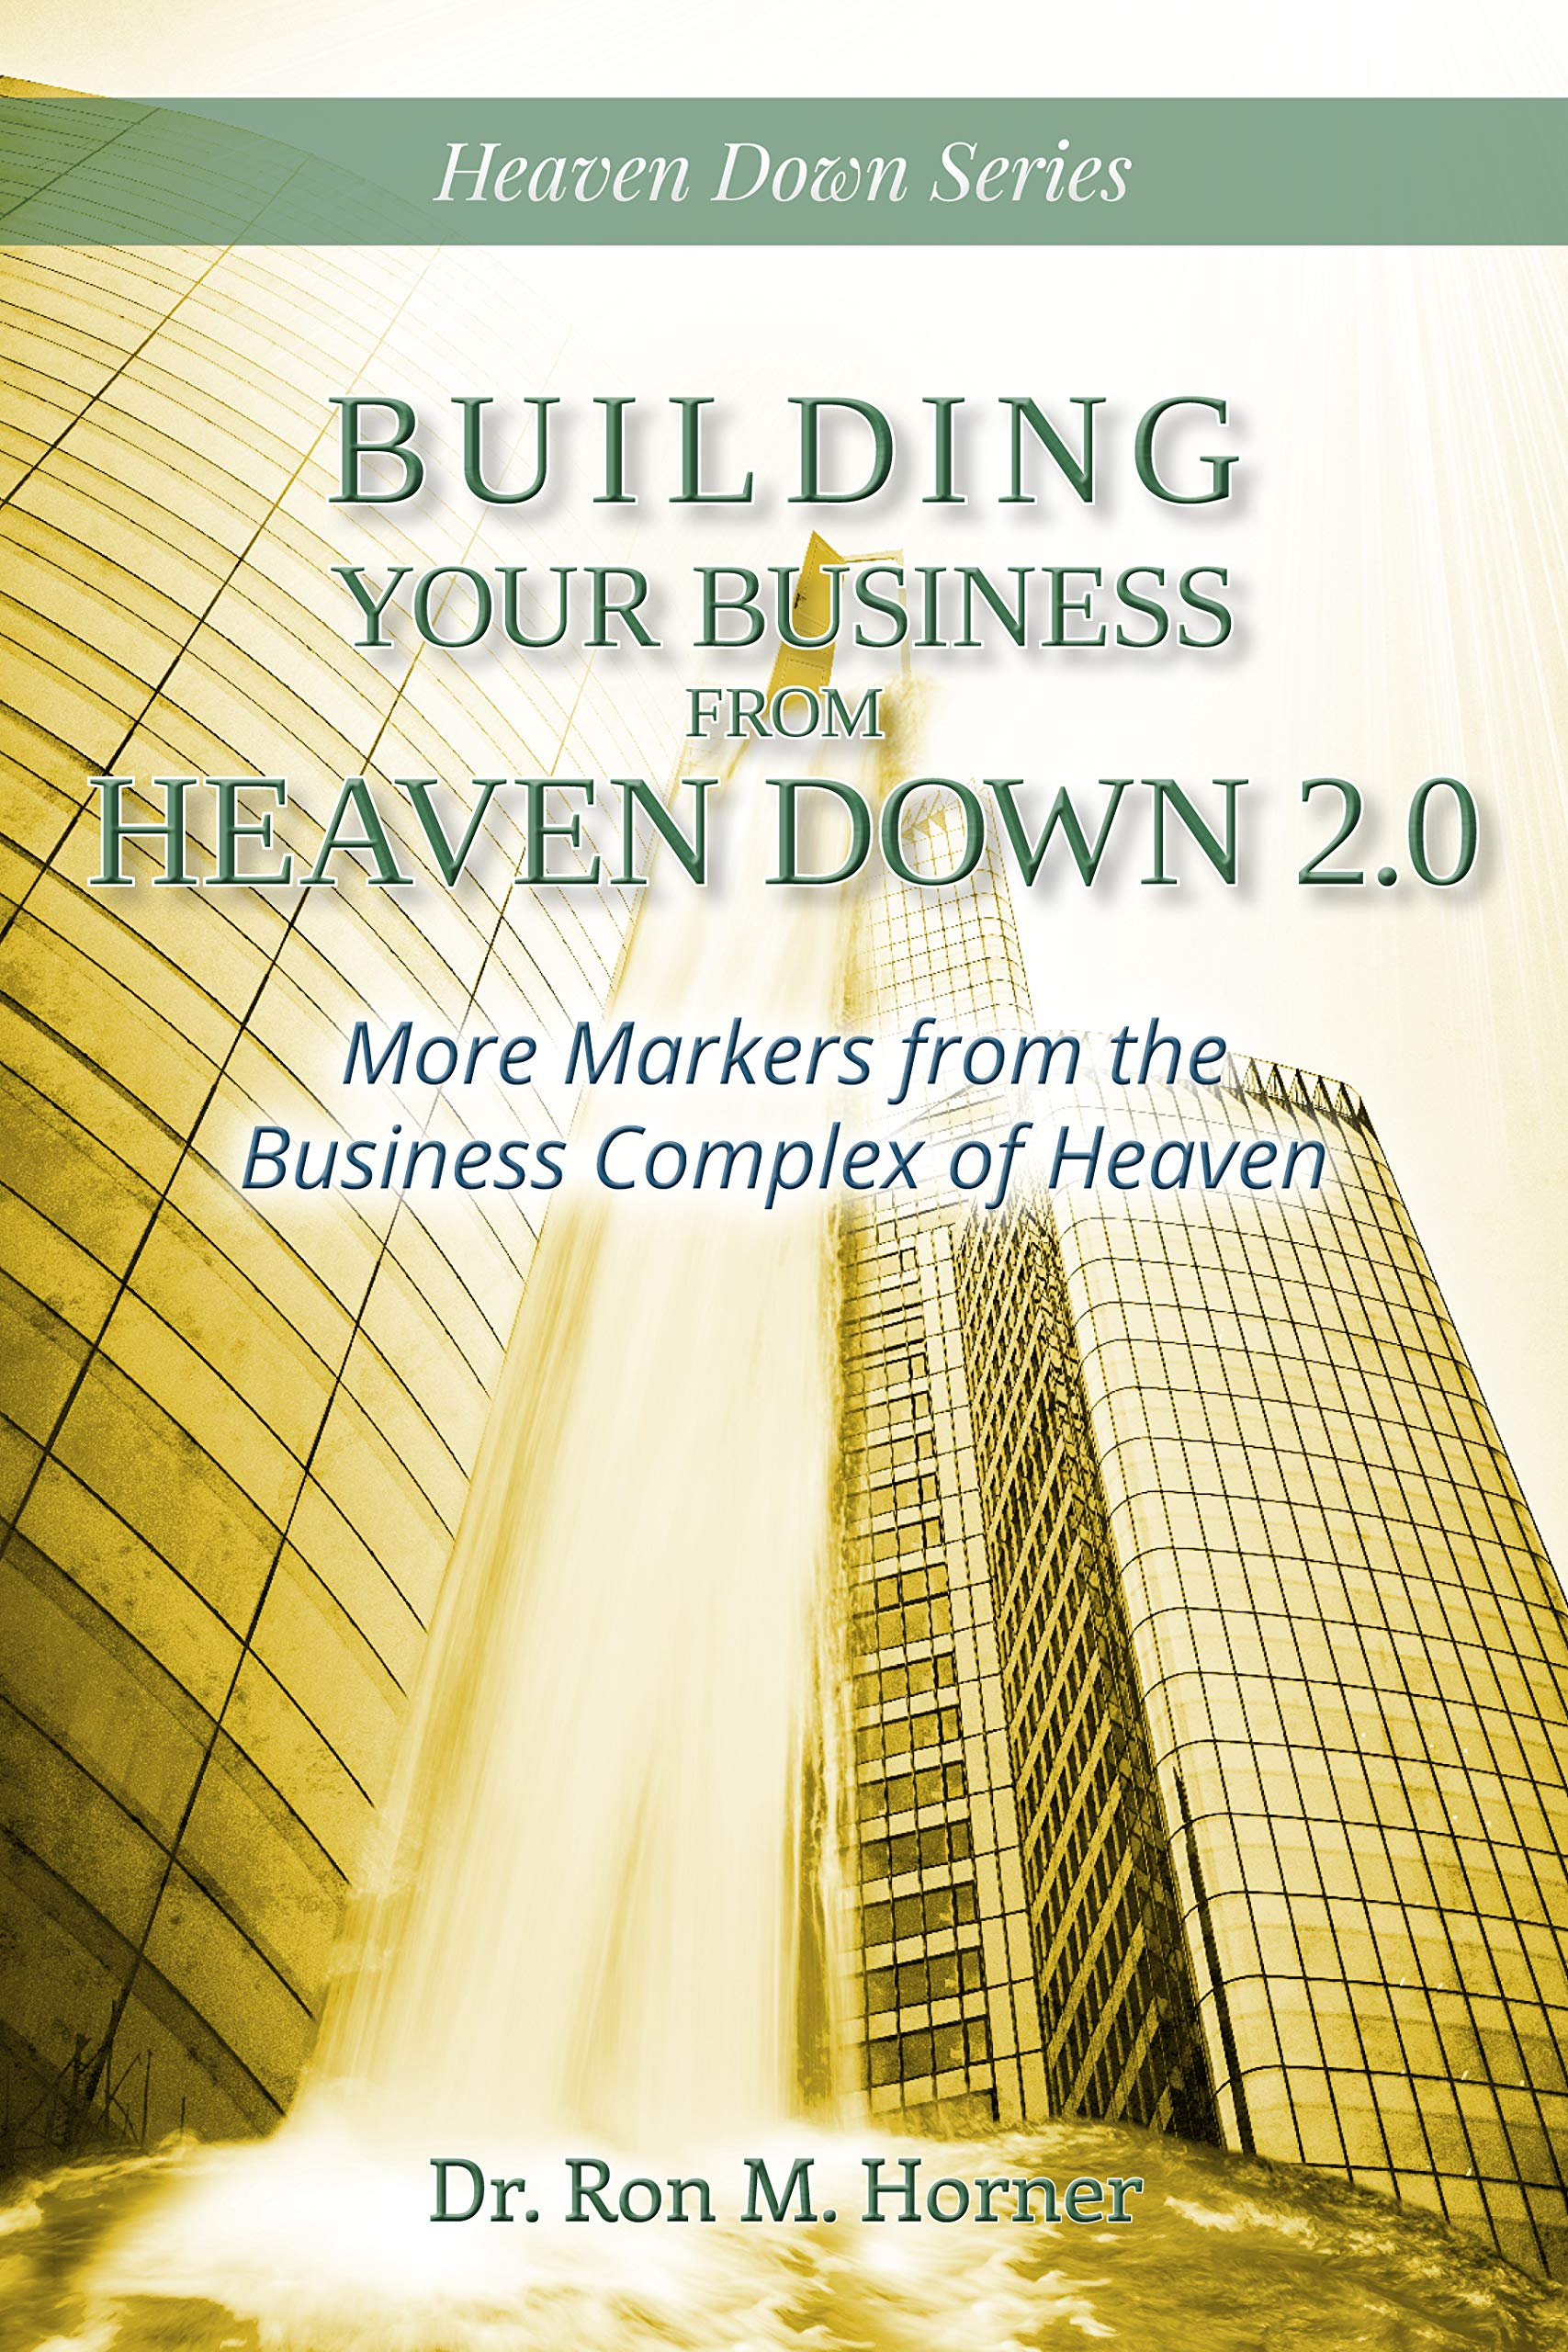 Building Your Business from Heaven Down 2.0: More Markers from the Business Complex of Heaven